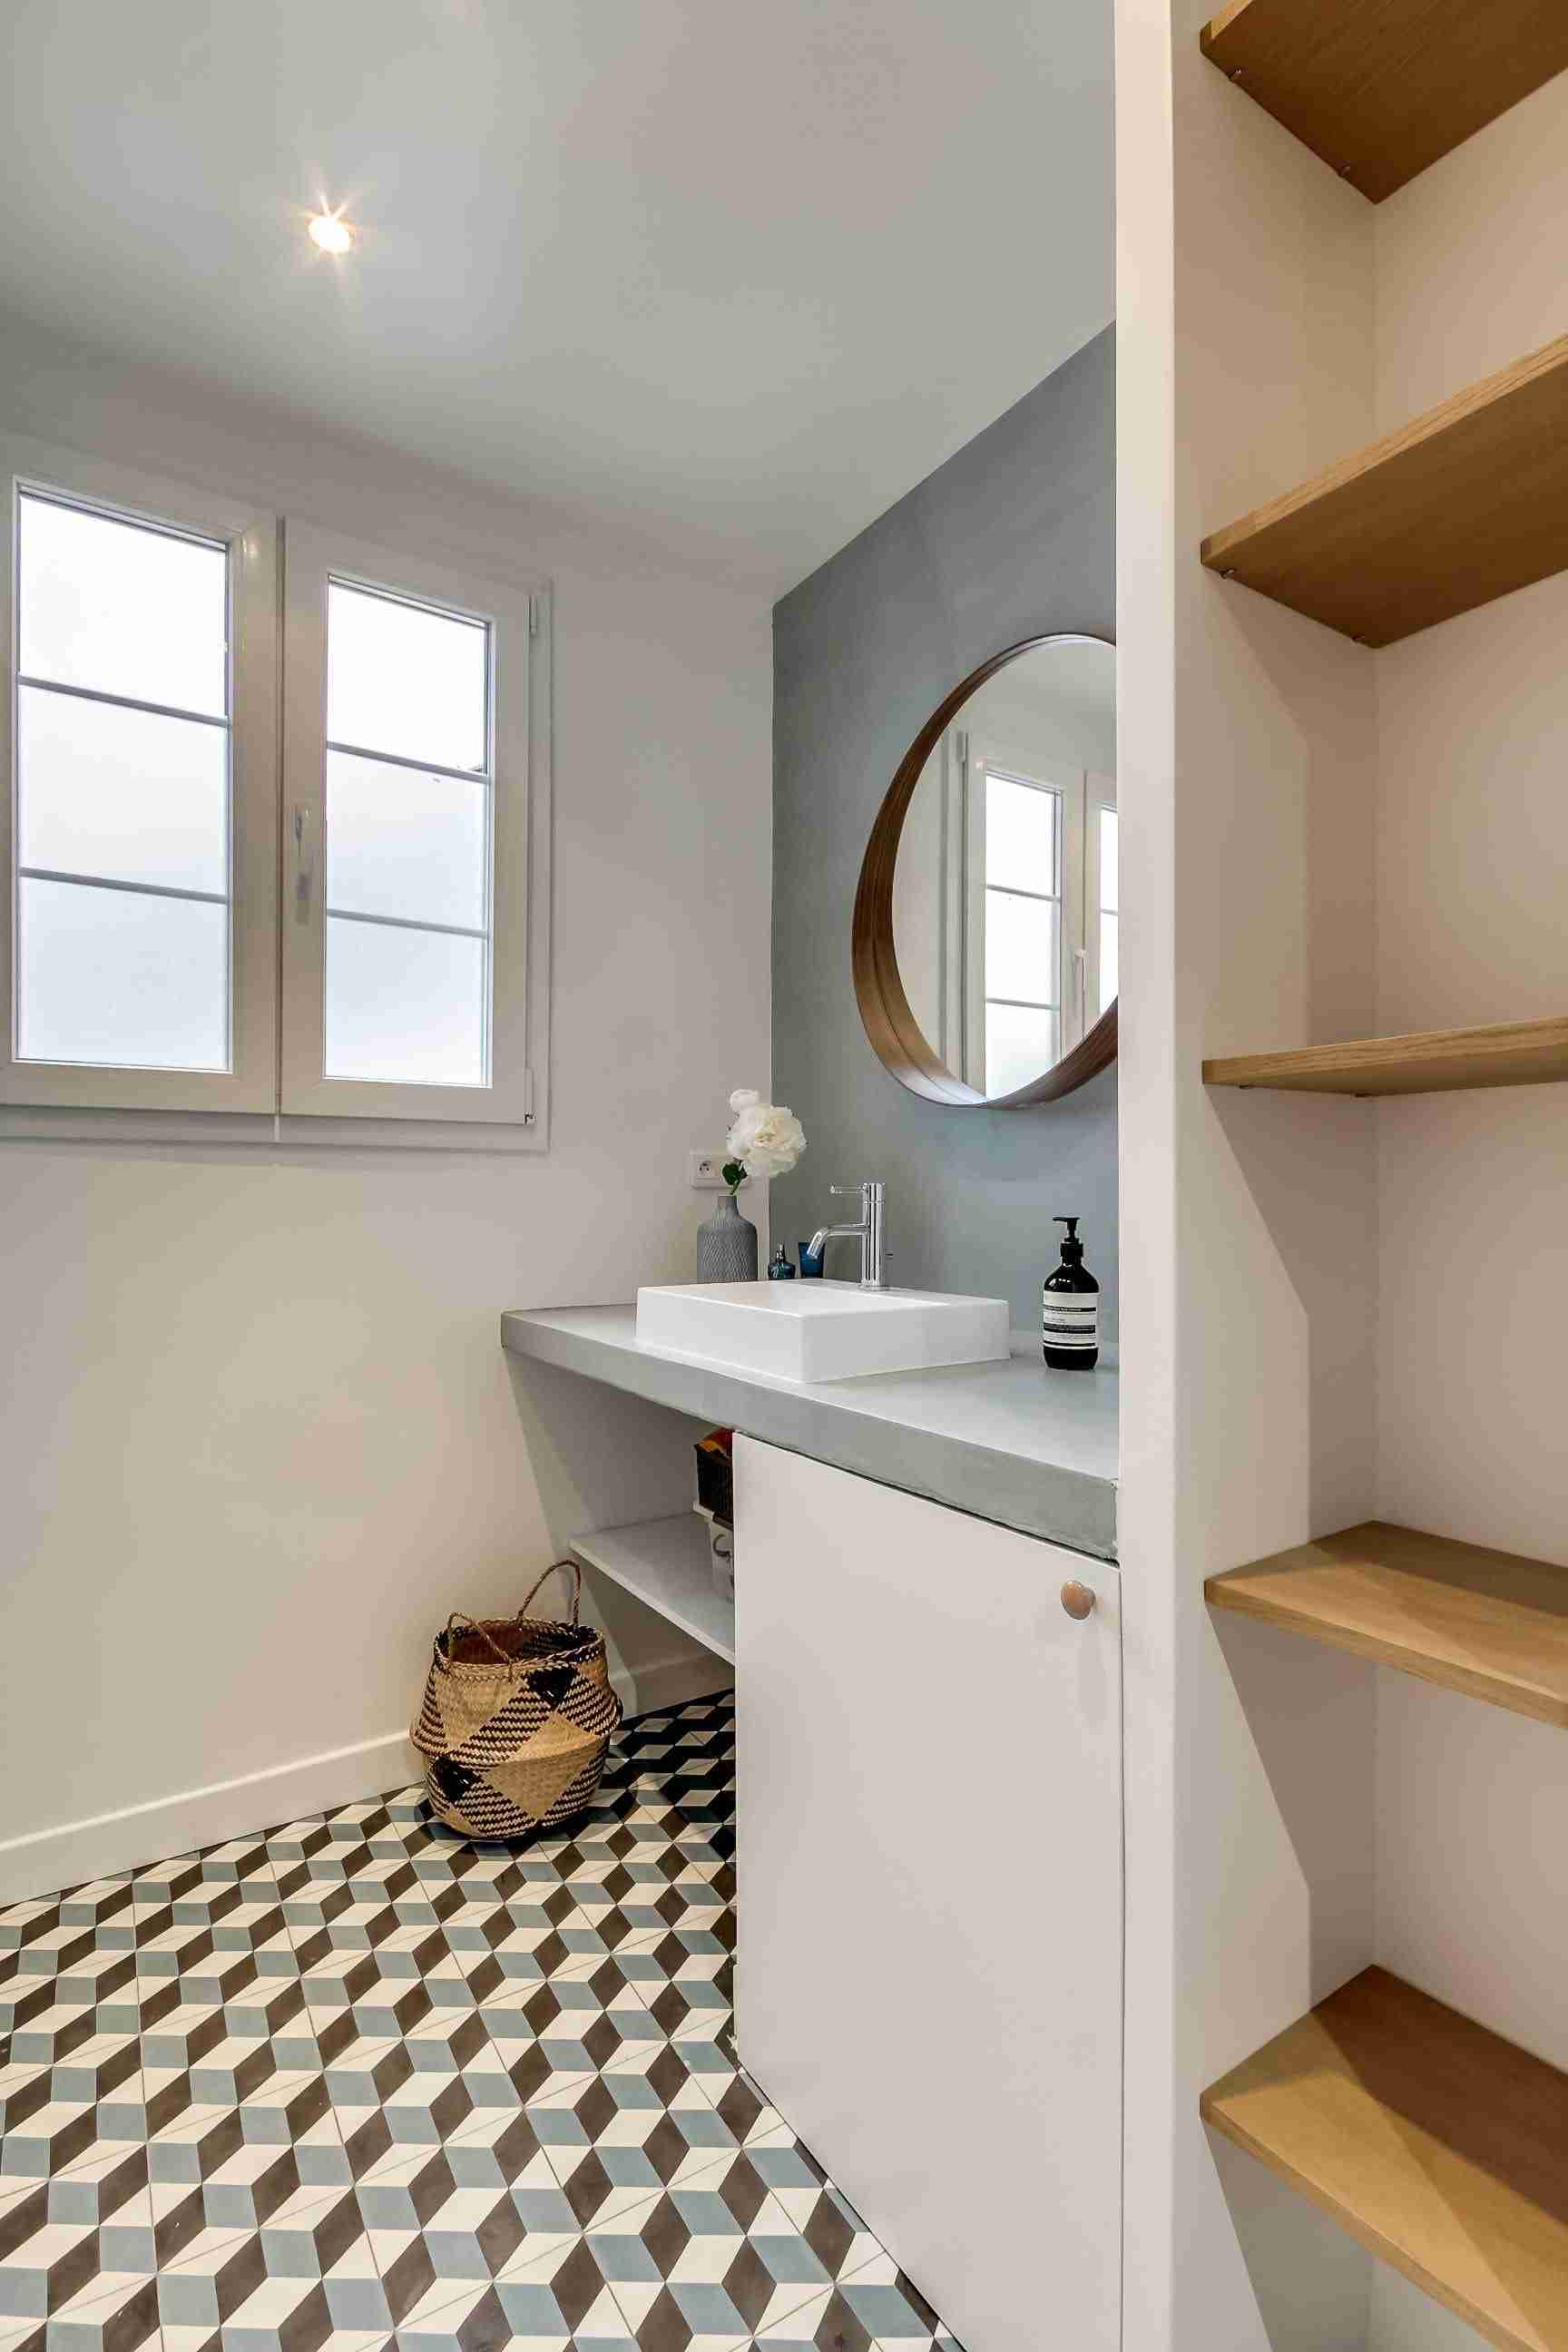 Bathroom Shelves: Fashionable Trends of Practical Interior Decoration. Gray accent wall with the mirror and countertop